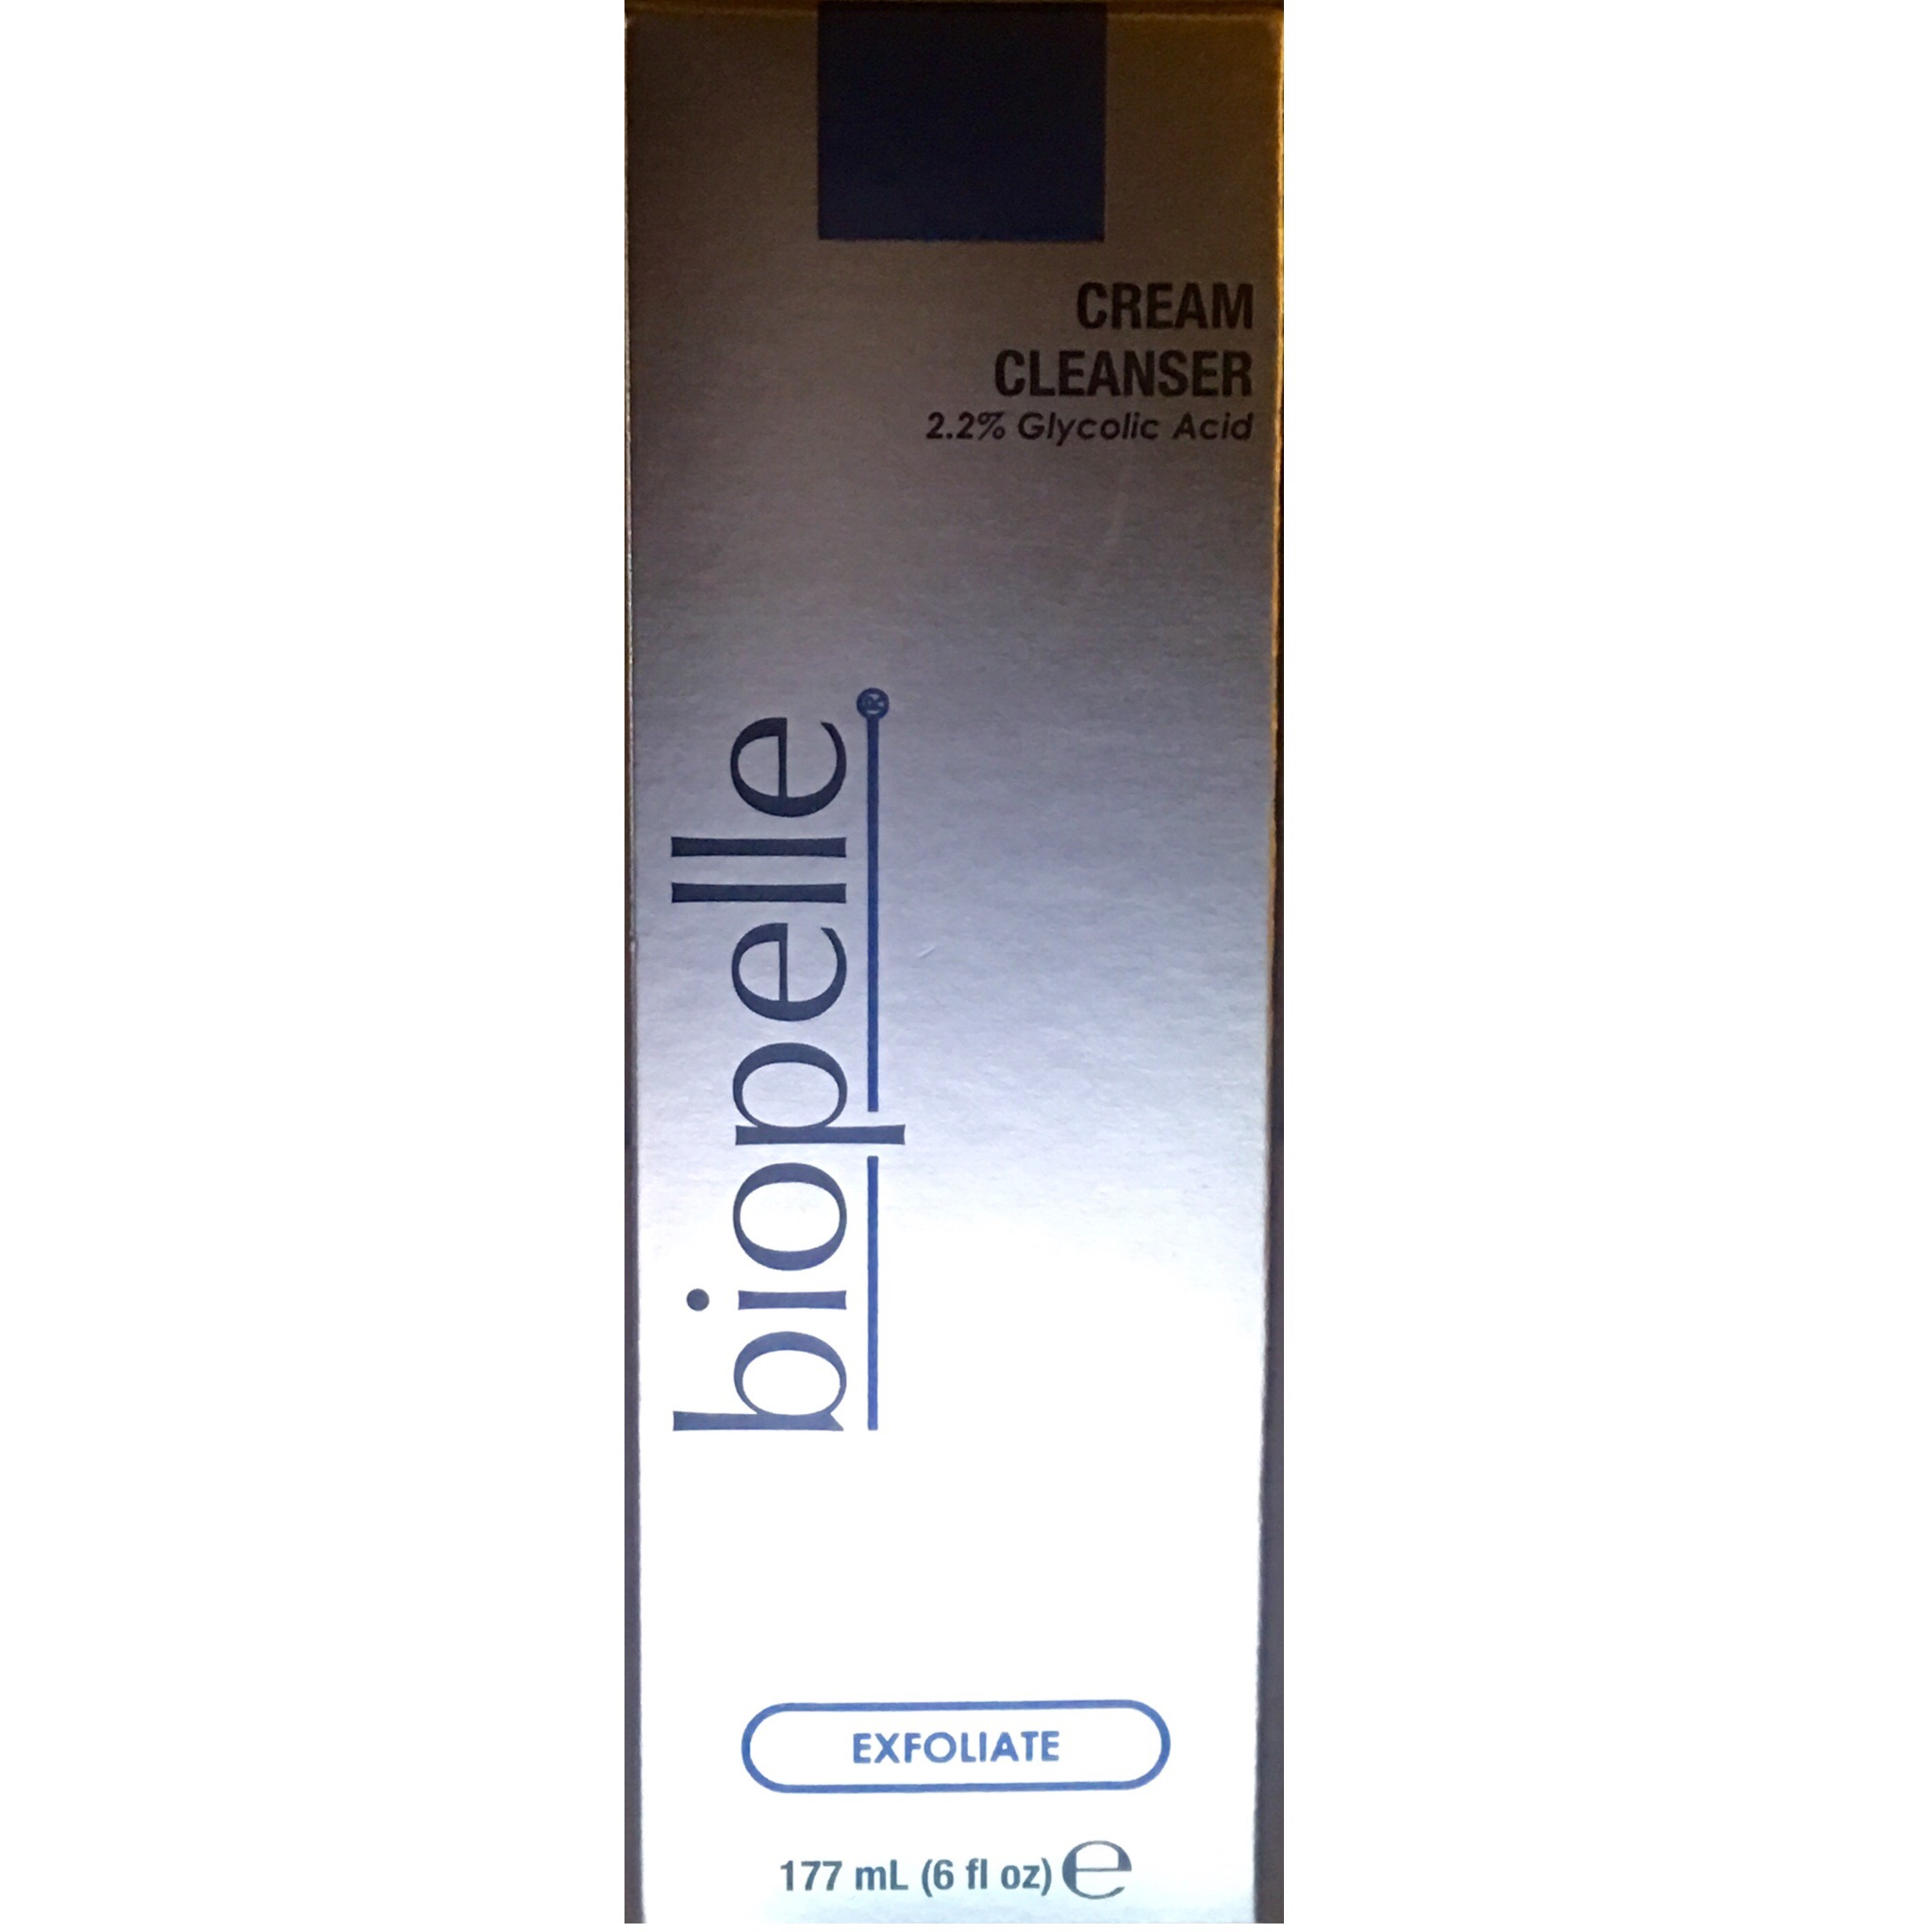 Love Biopelle! There cleansers and glycolic peel for the pm! Also retinol for day! This is the bomb! Can't live without!